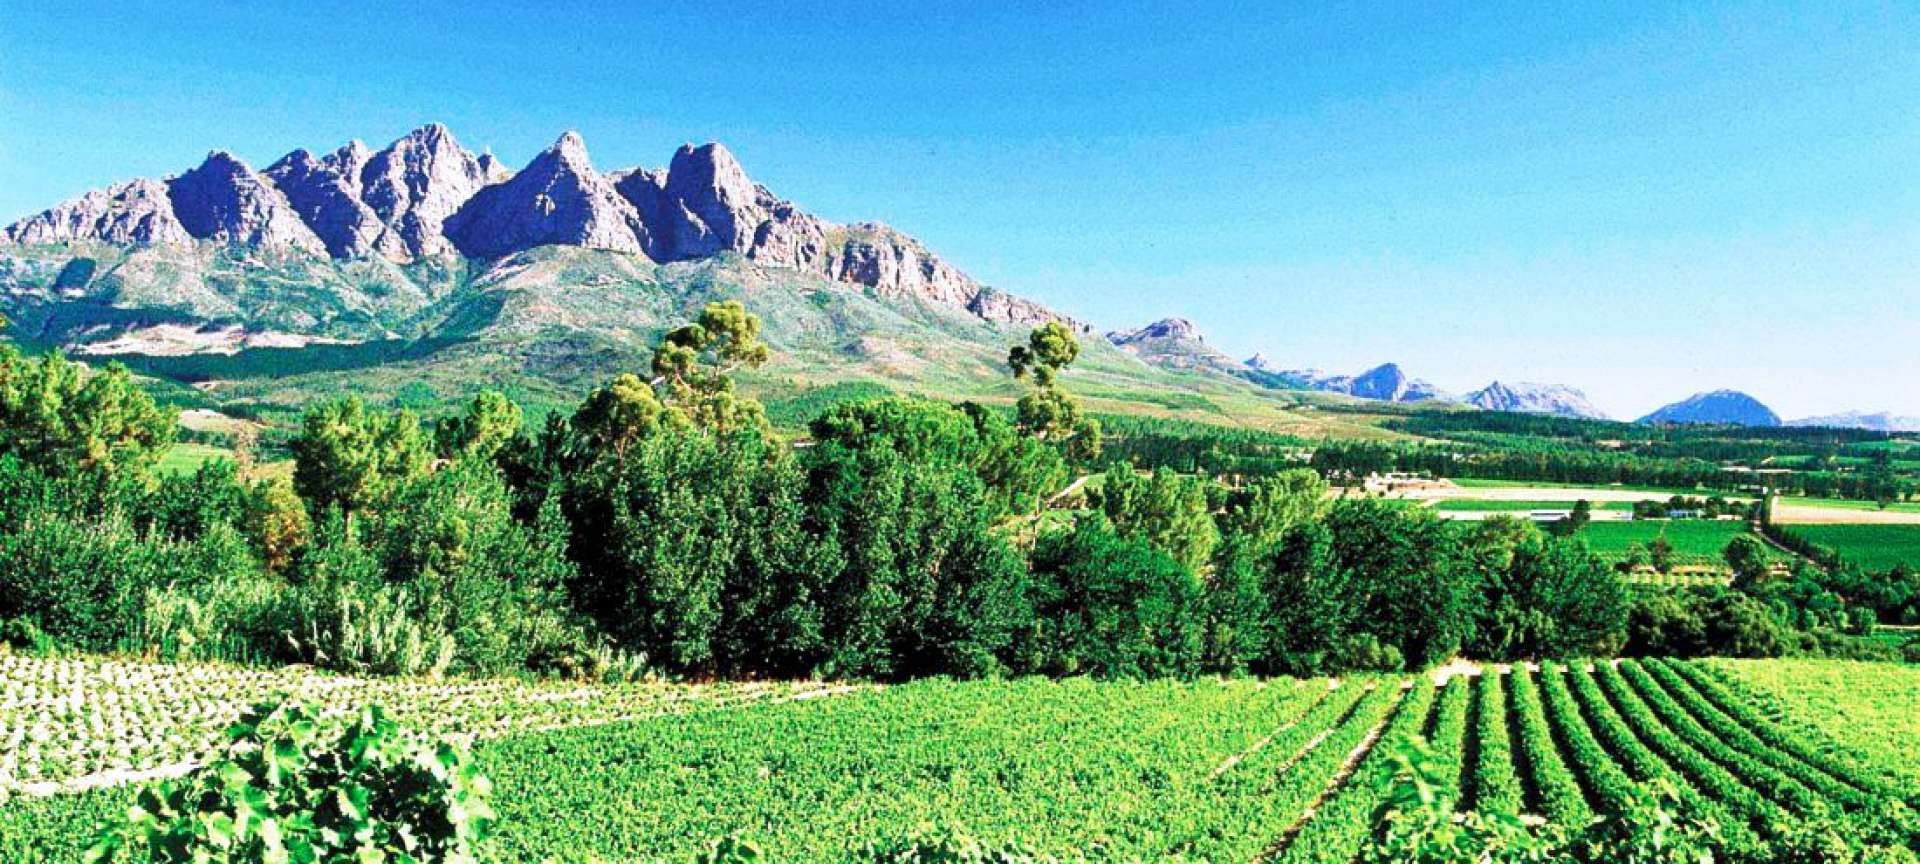 Charge your camera's batteries - the winelands offer incredible views and the best wines.